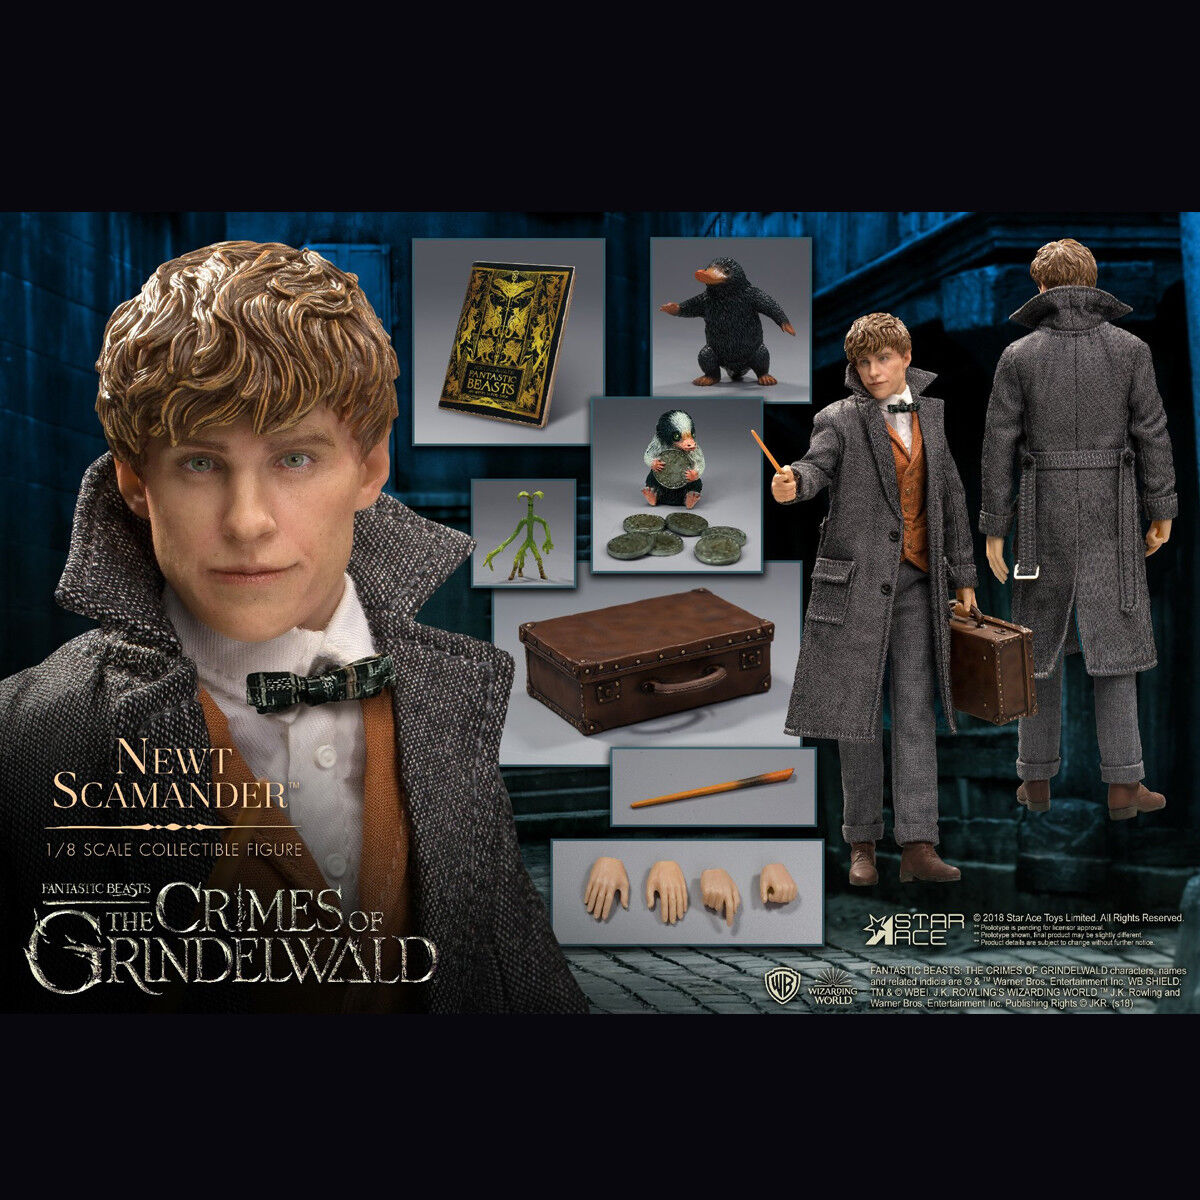 STAR ACE Toys 1/8 SA8012 Newt Scamander Fantastic Beast 2 Figure Collectible New